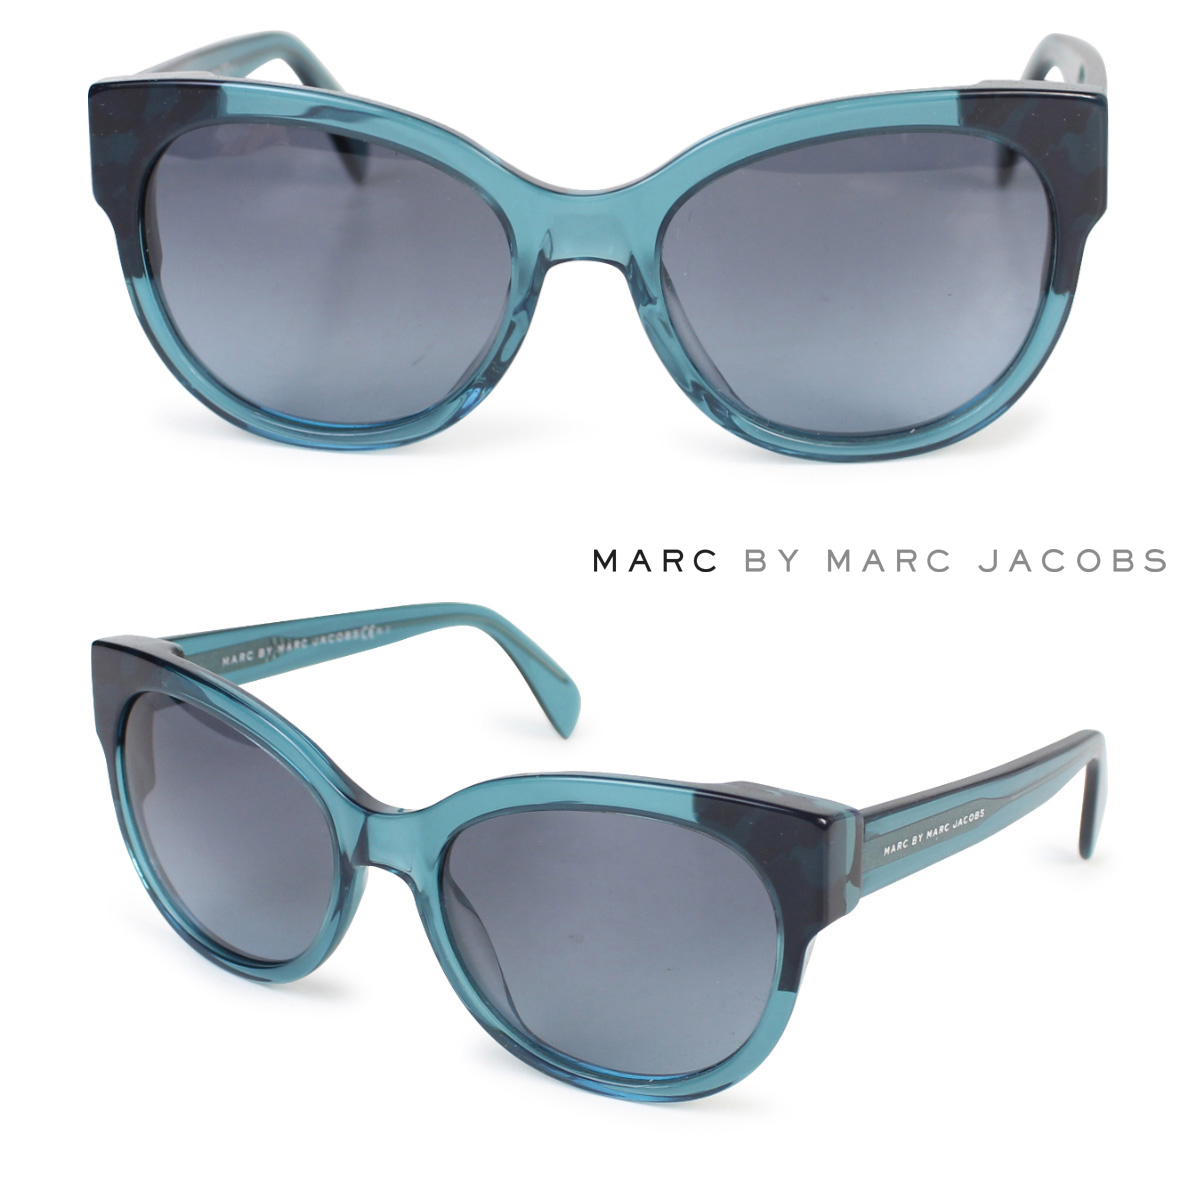 genuine shoes competitive price good out x MARC BY MARC JACOBS mark by mark Jacobs sunglasses Lady's UV cut MMJ486/S  is blue